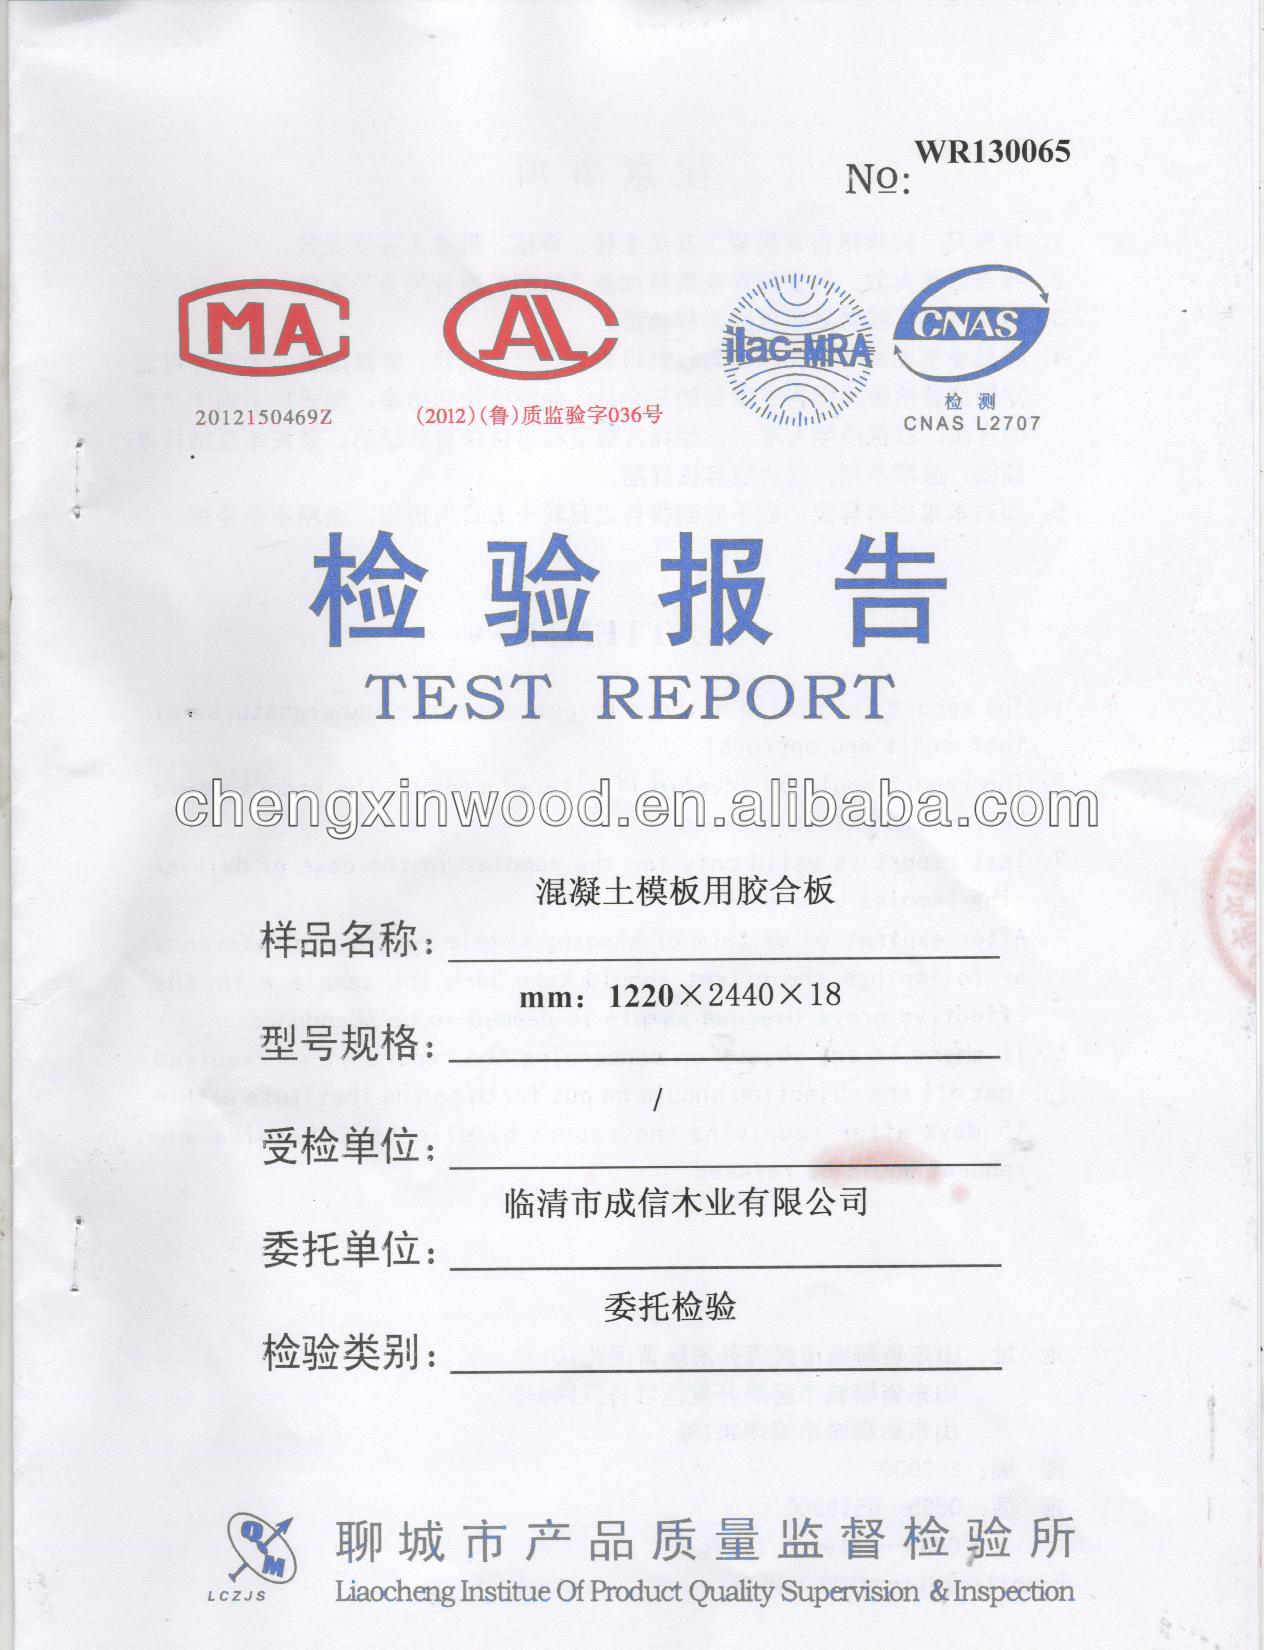 Product quality testing report